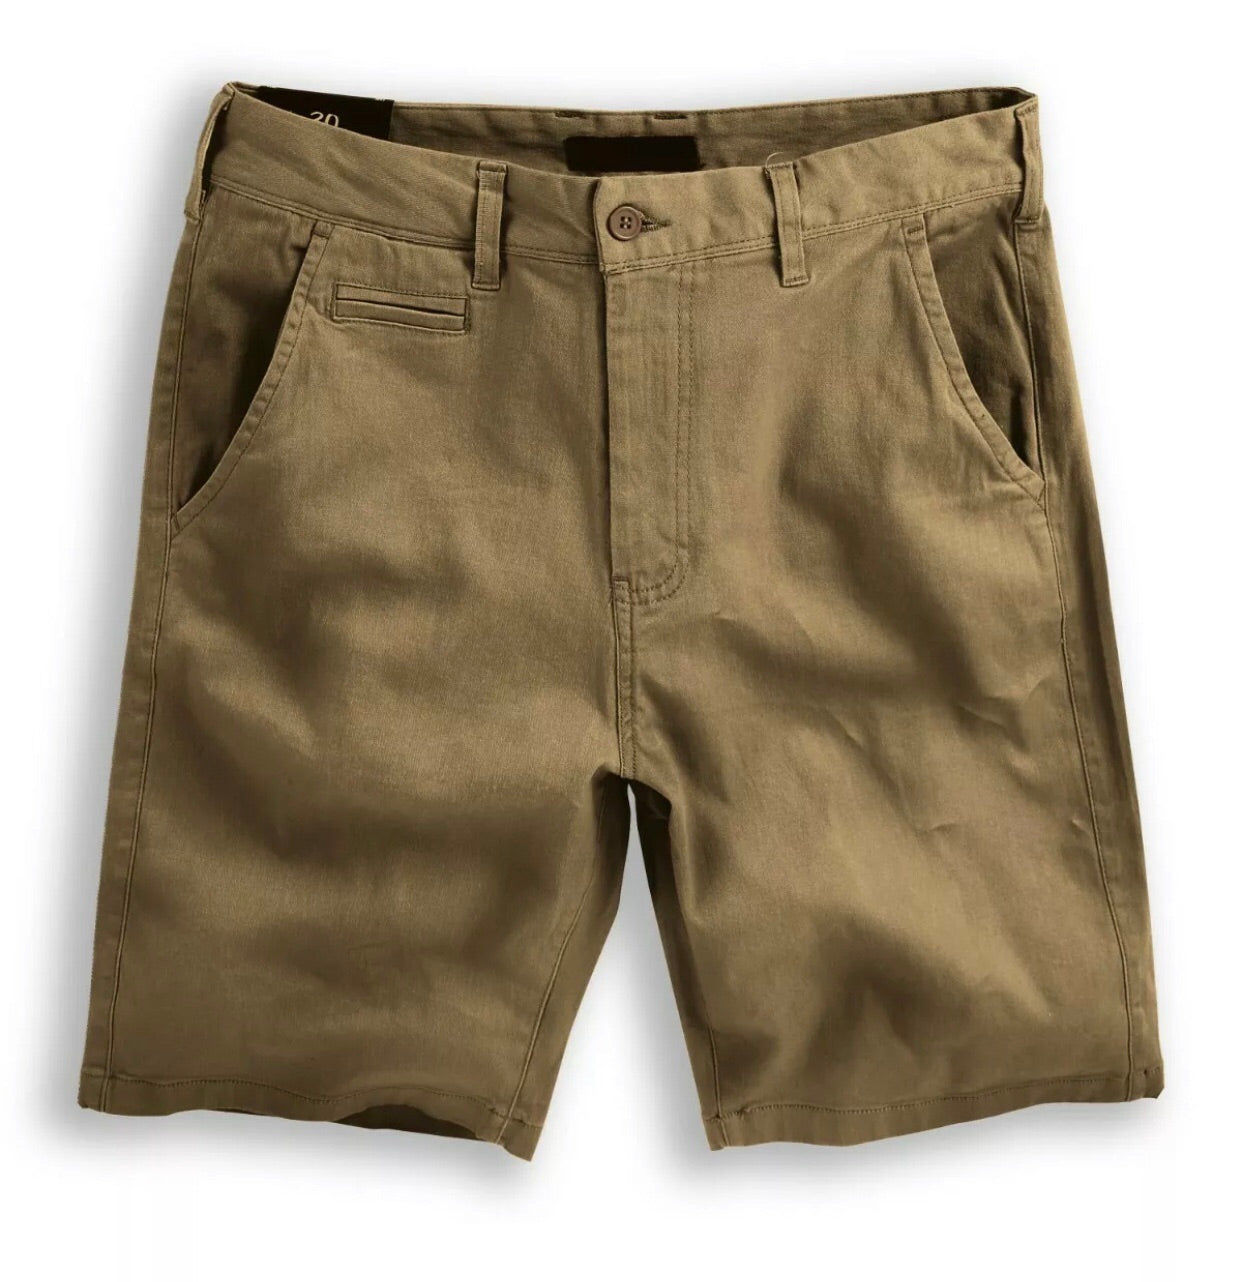 The Everyday Chino Short - Sizes up to 46